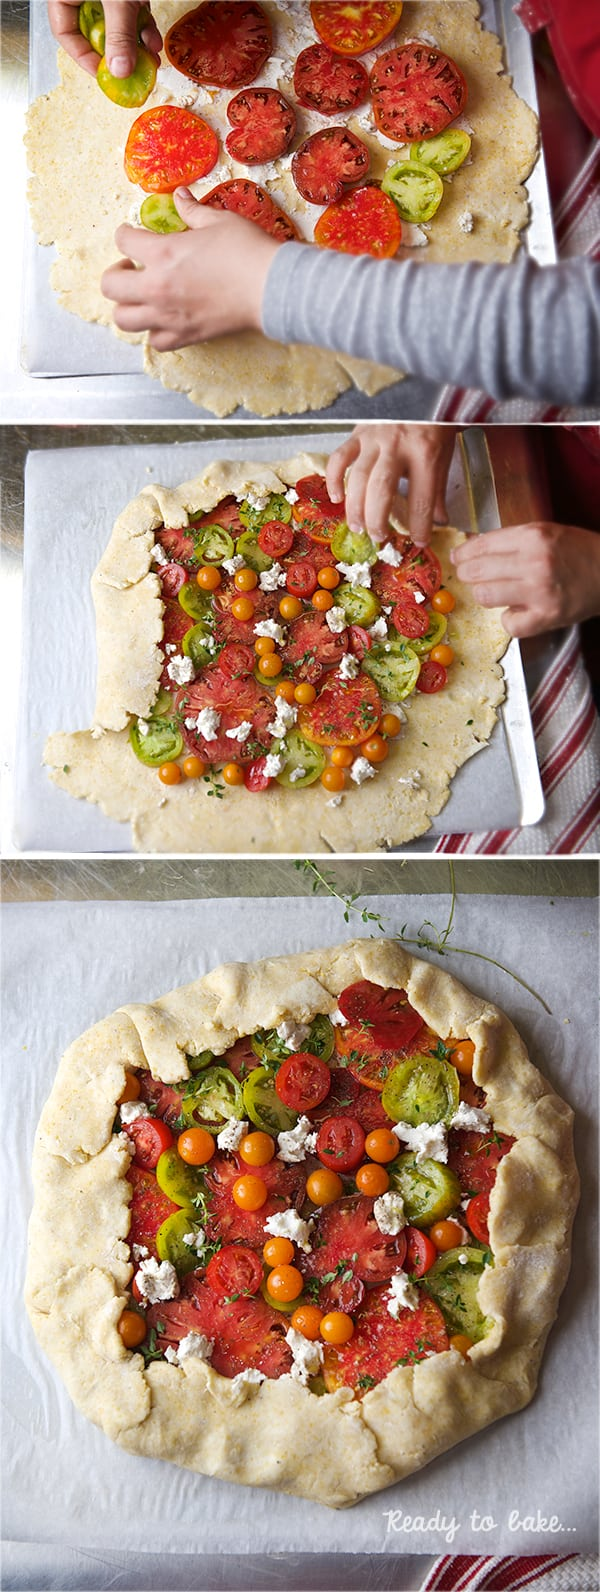 Heirloom-Tomato-Crostata_How-to-make-a-Crostata,-Gallete,-Free-form-savory-pie